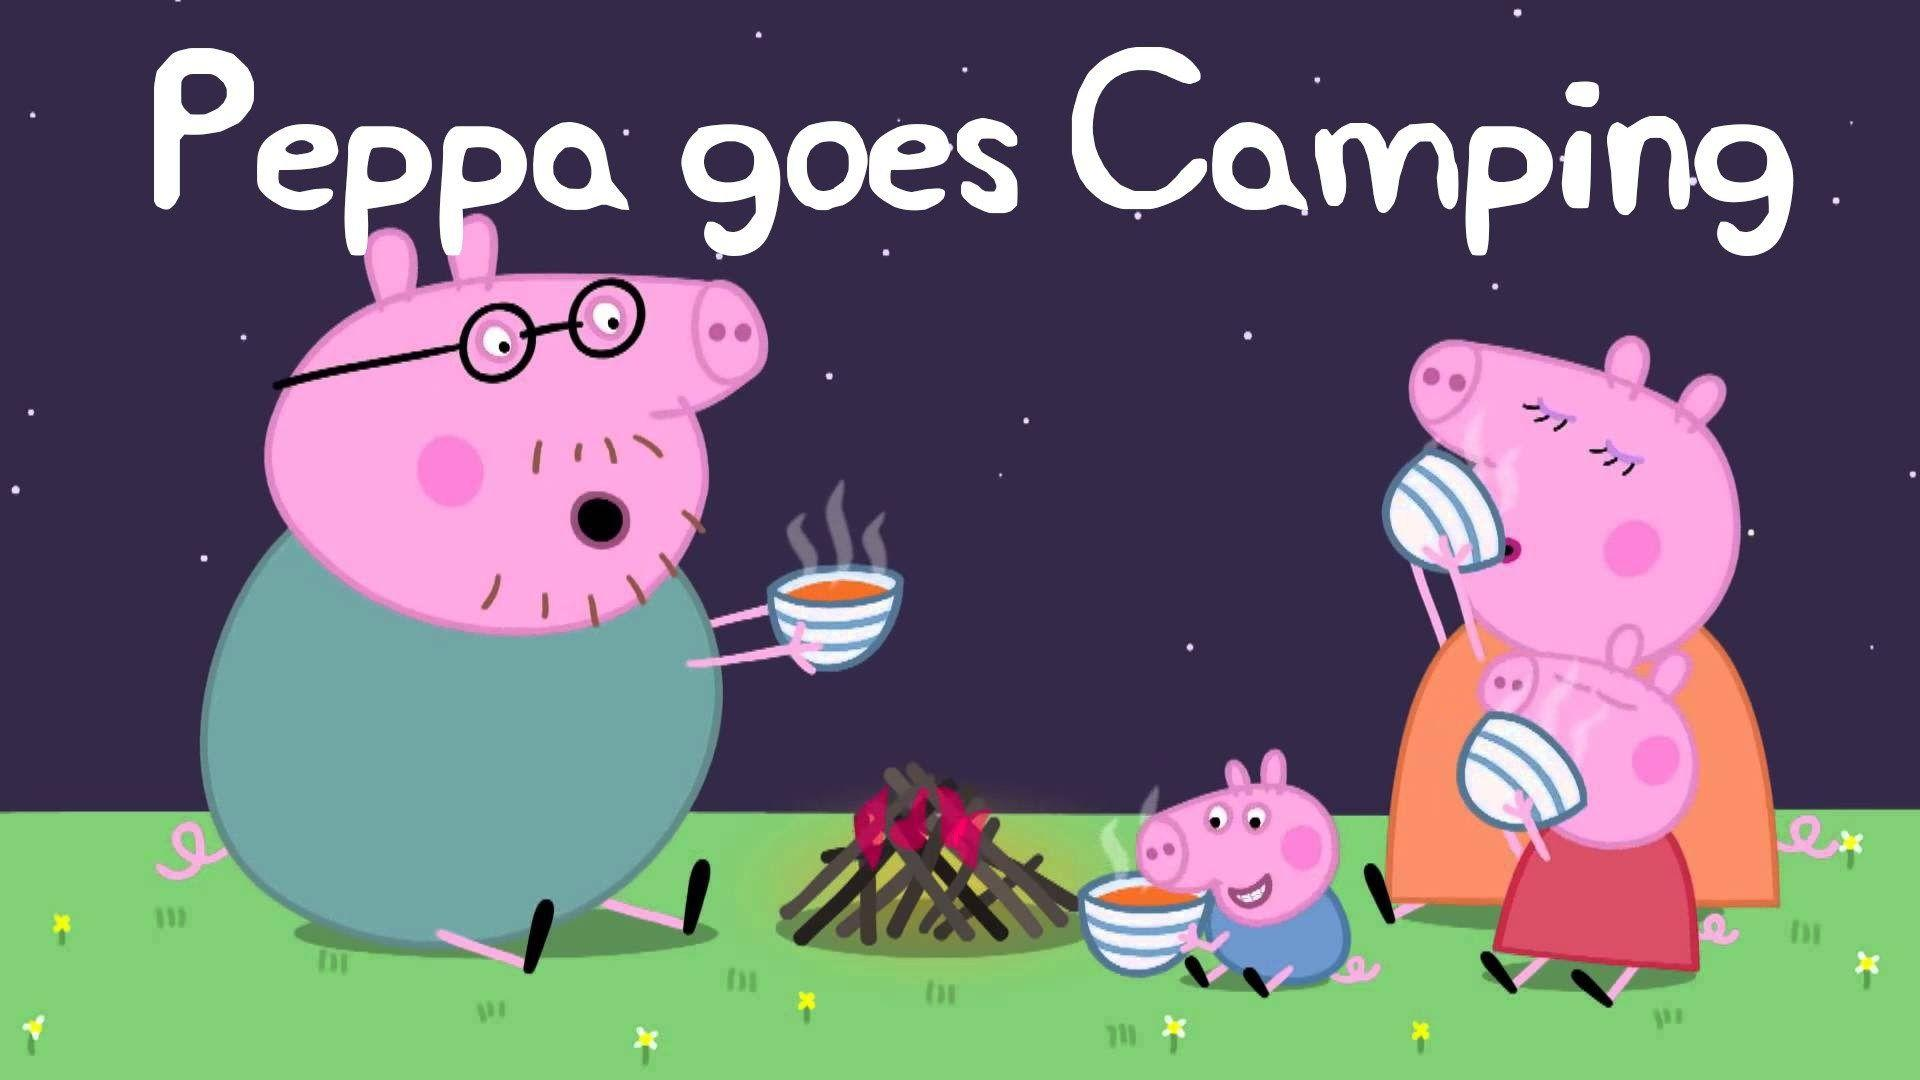 Peppa Pig HD Wallpaper 73 - Download HD Wallpapers